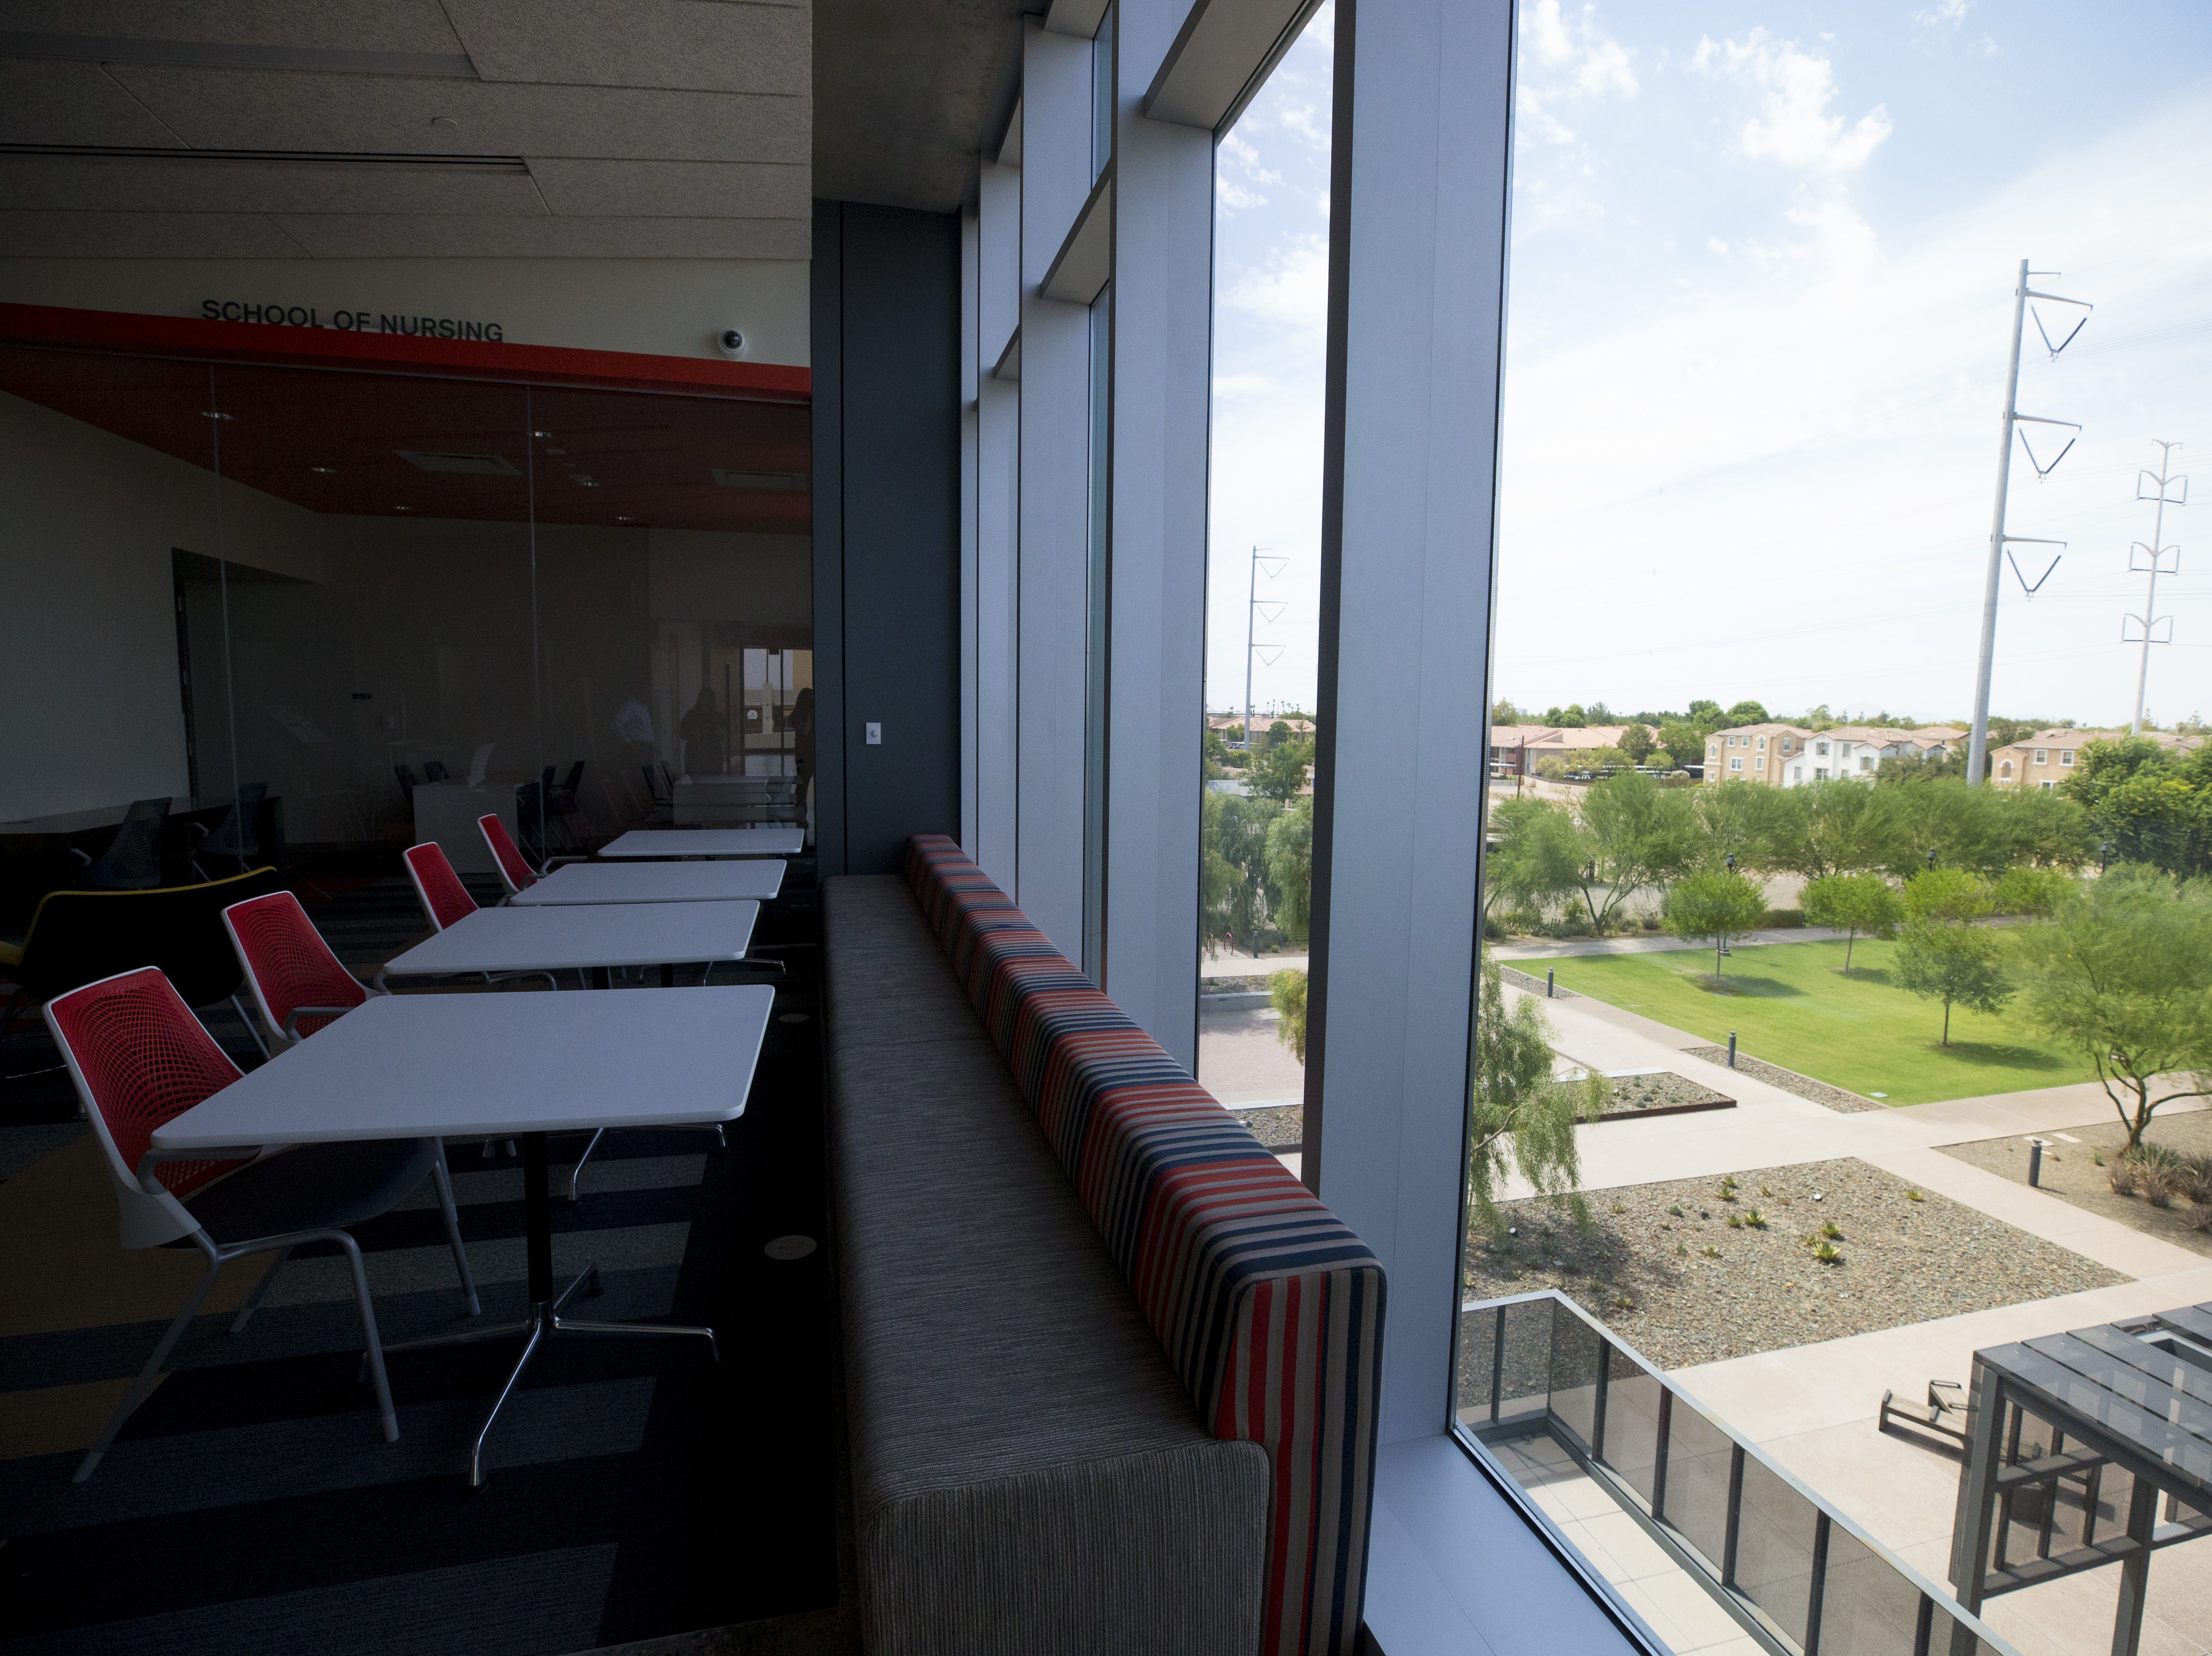 The third floor of the Gilbert University Building is designed to service nursing students. The city recently leased the first floor to Park University but is looking for other tenants to fill the four story building.